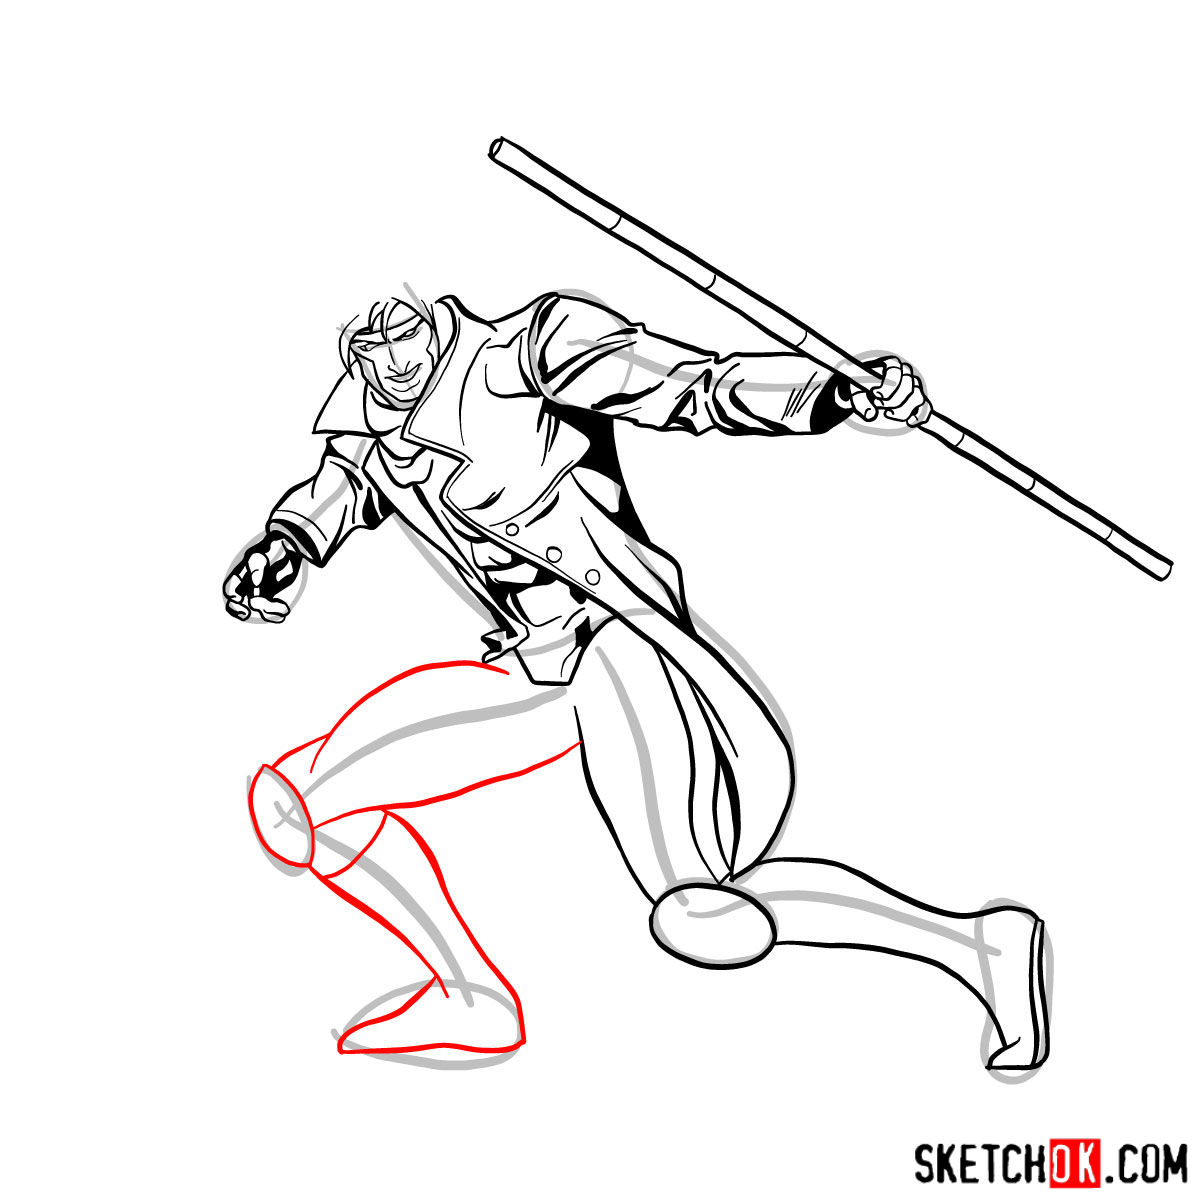 How to draw Gambit from X-Men comics - step 11